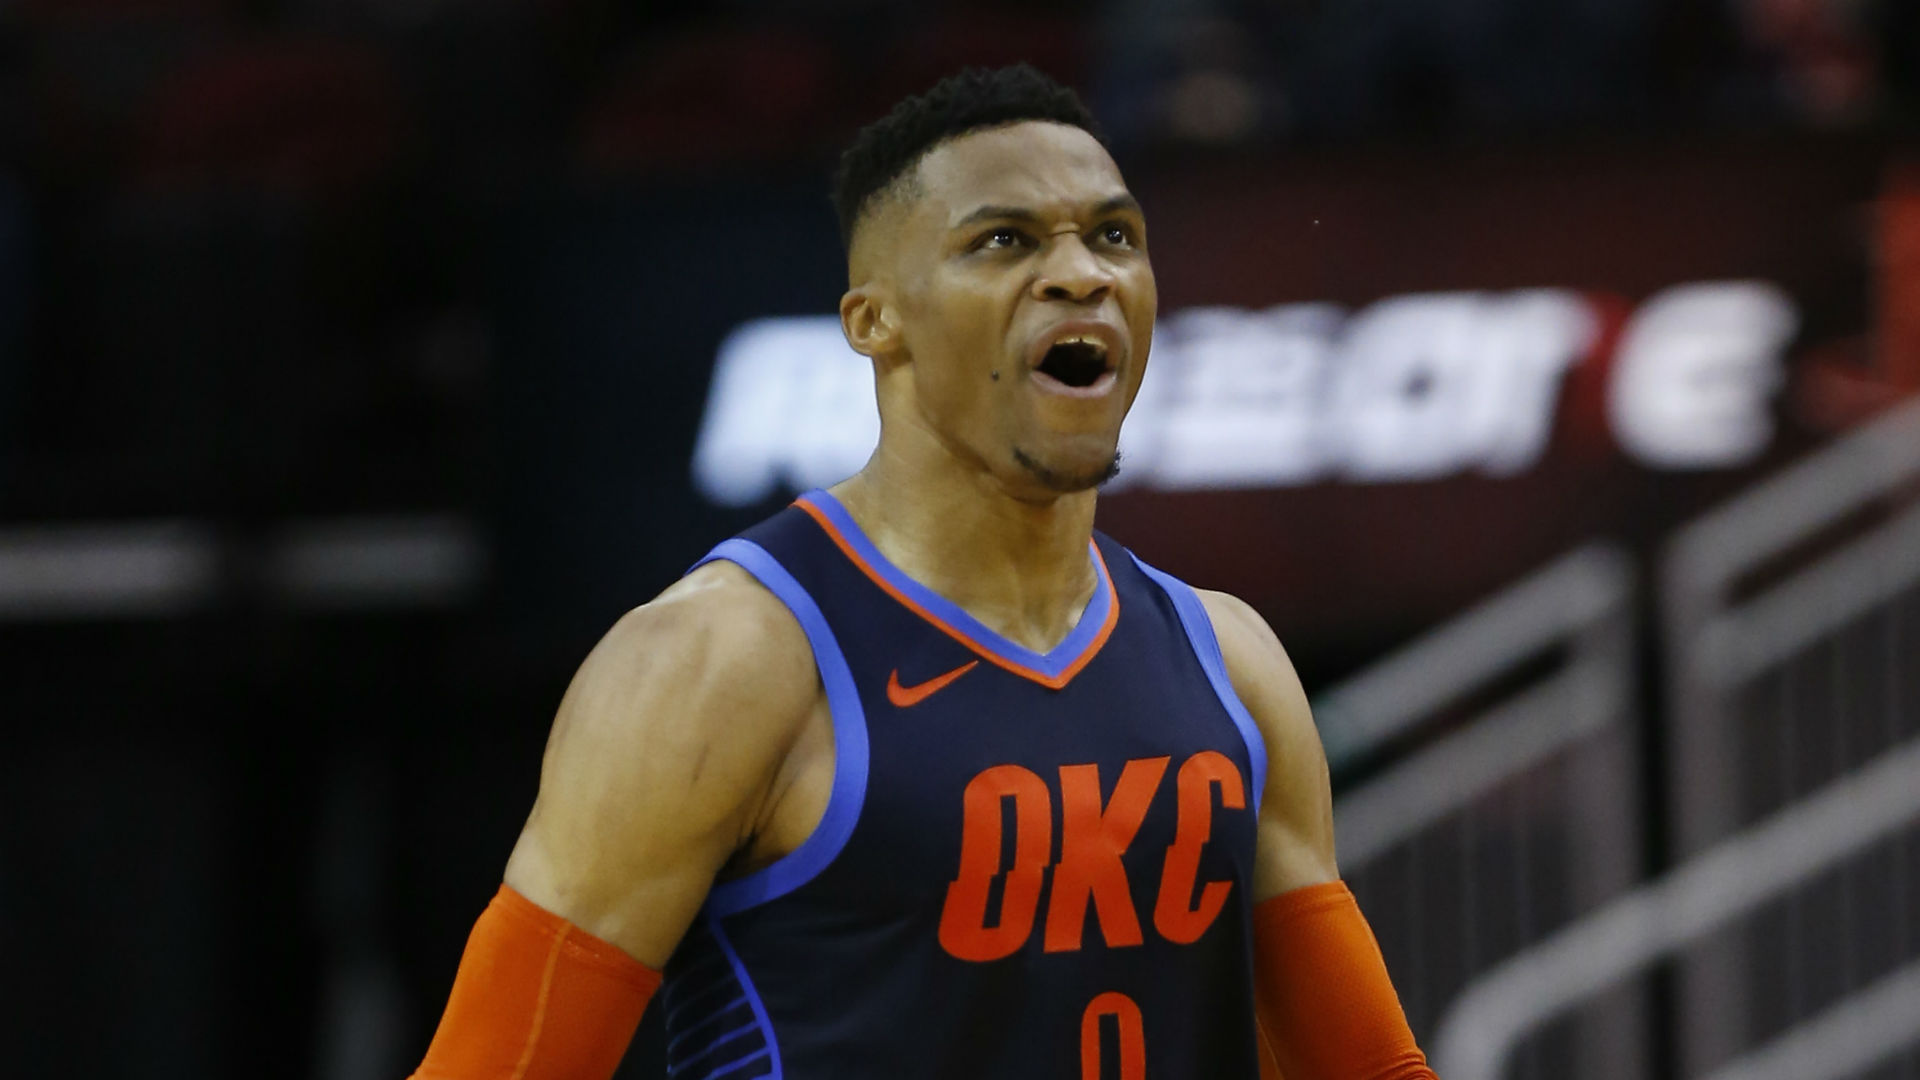 After he was traded to the Houston Rockets, Russell Westbrook reflected on his time in Oklahoma City.